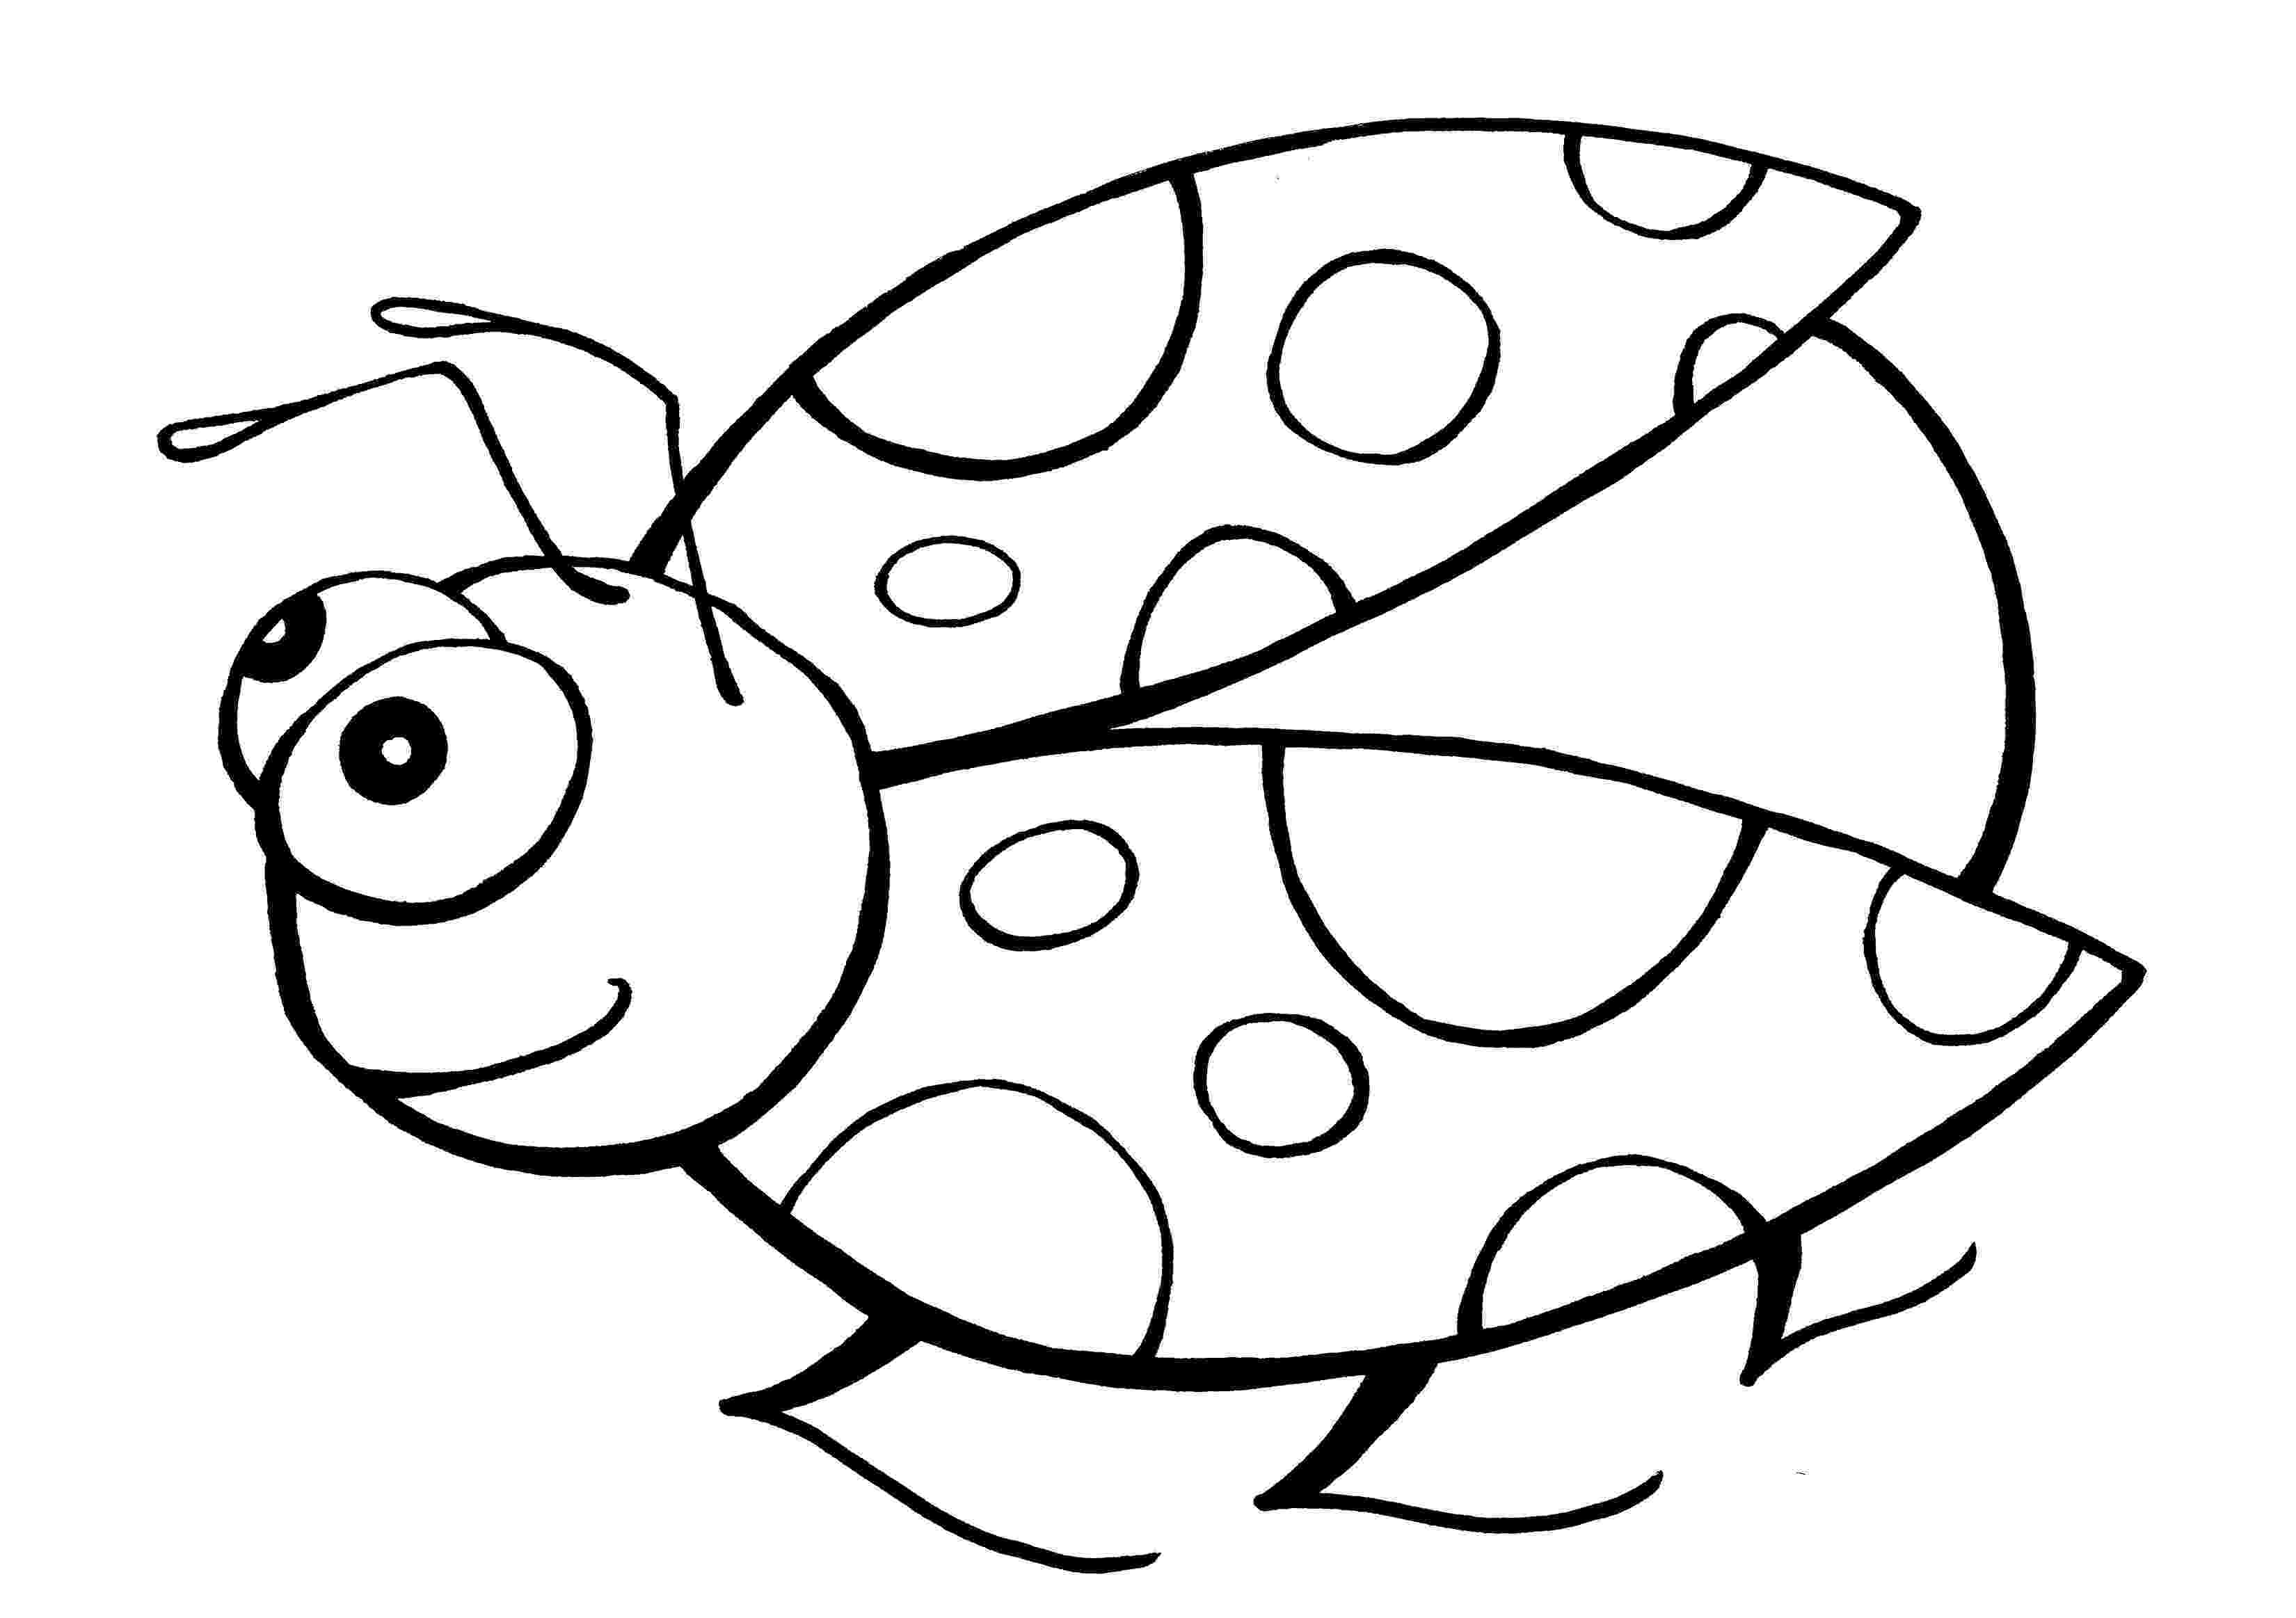 bugs colouring pages ladybug coloring pages to download and print for free pages colouring bugs